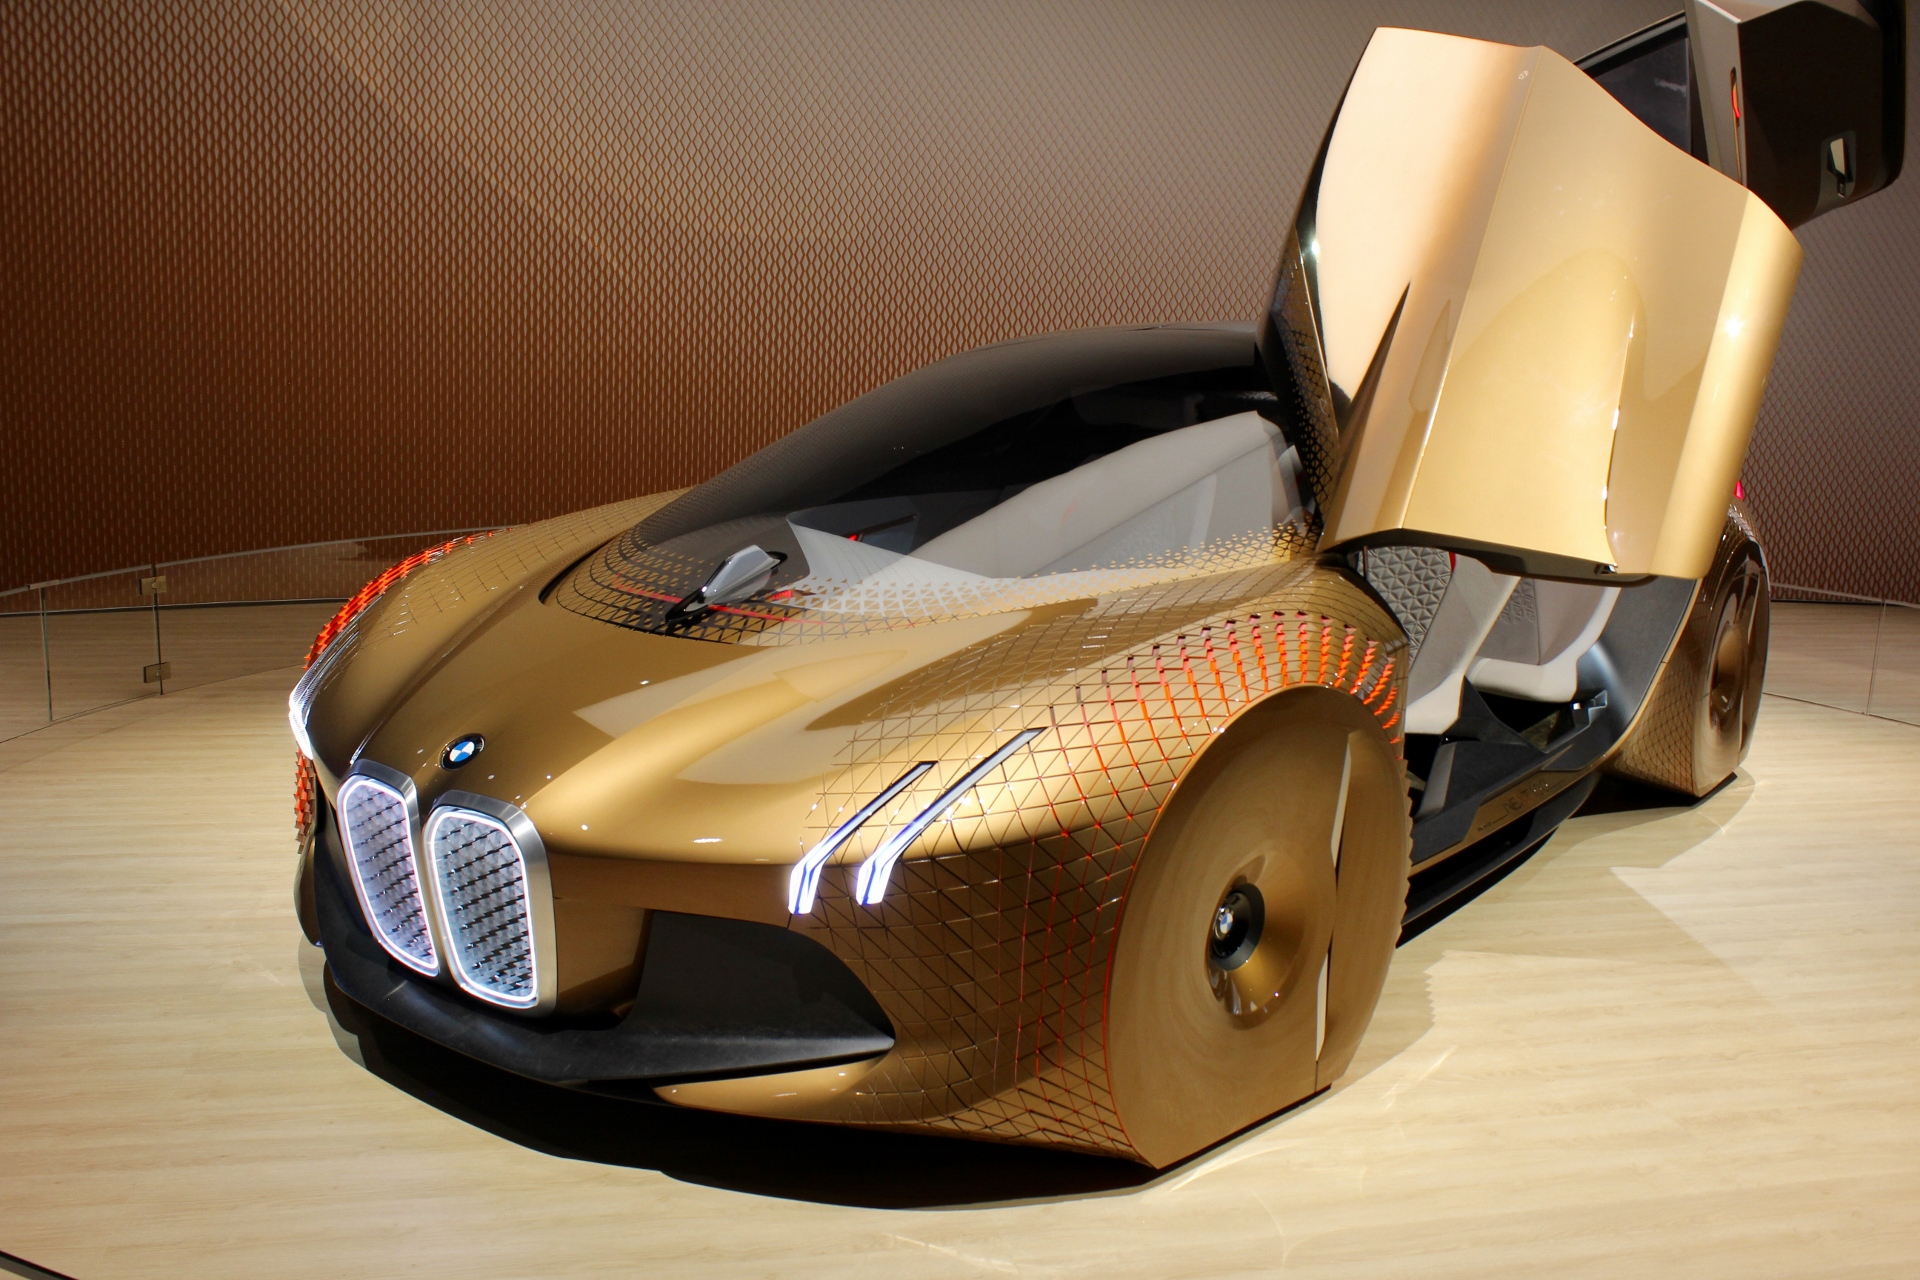 BMW picks plant for iNext self-driving EV due in 2021